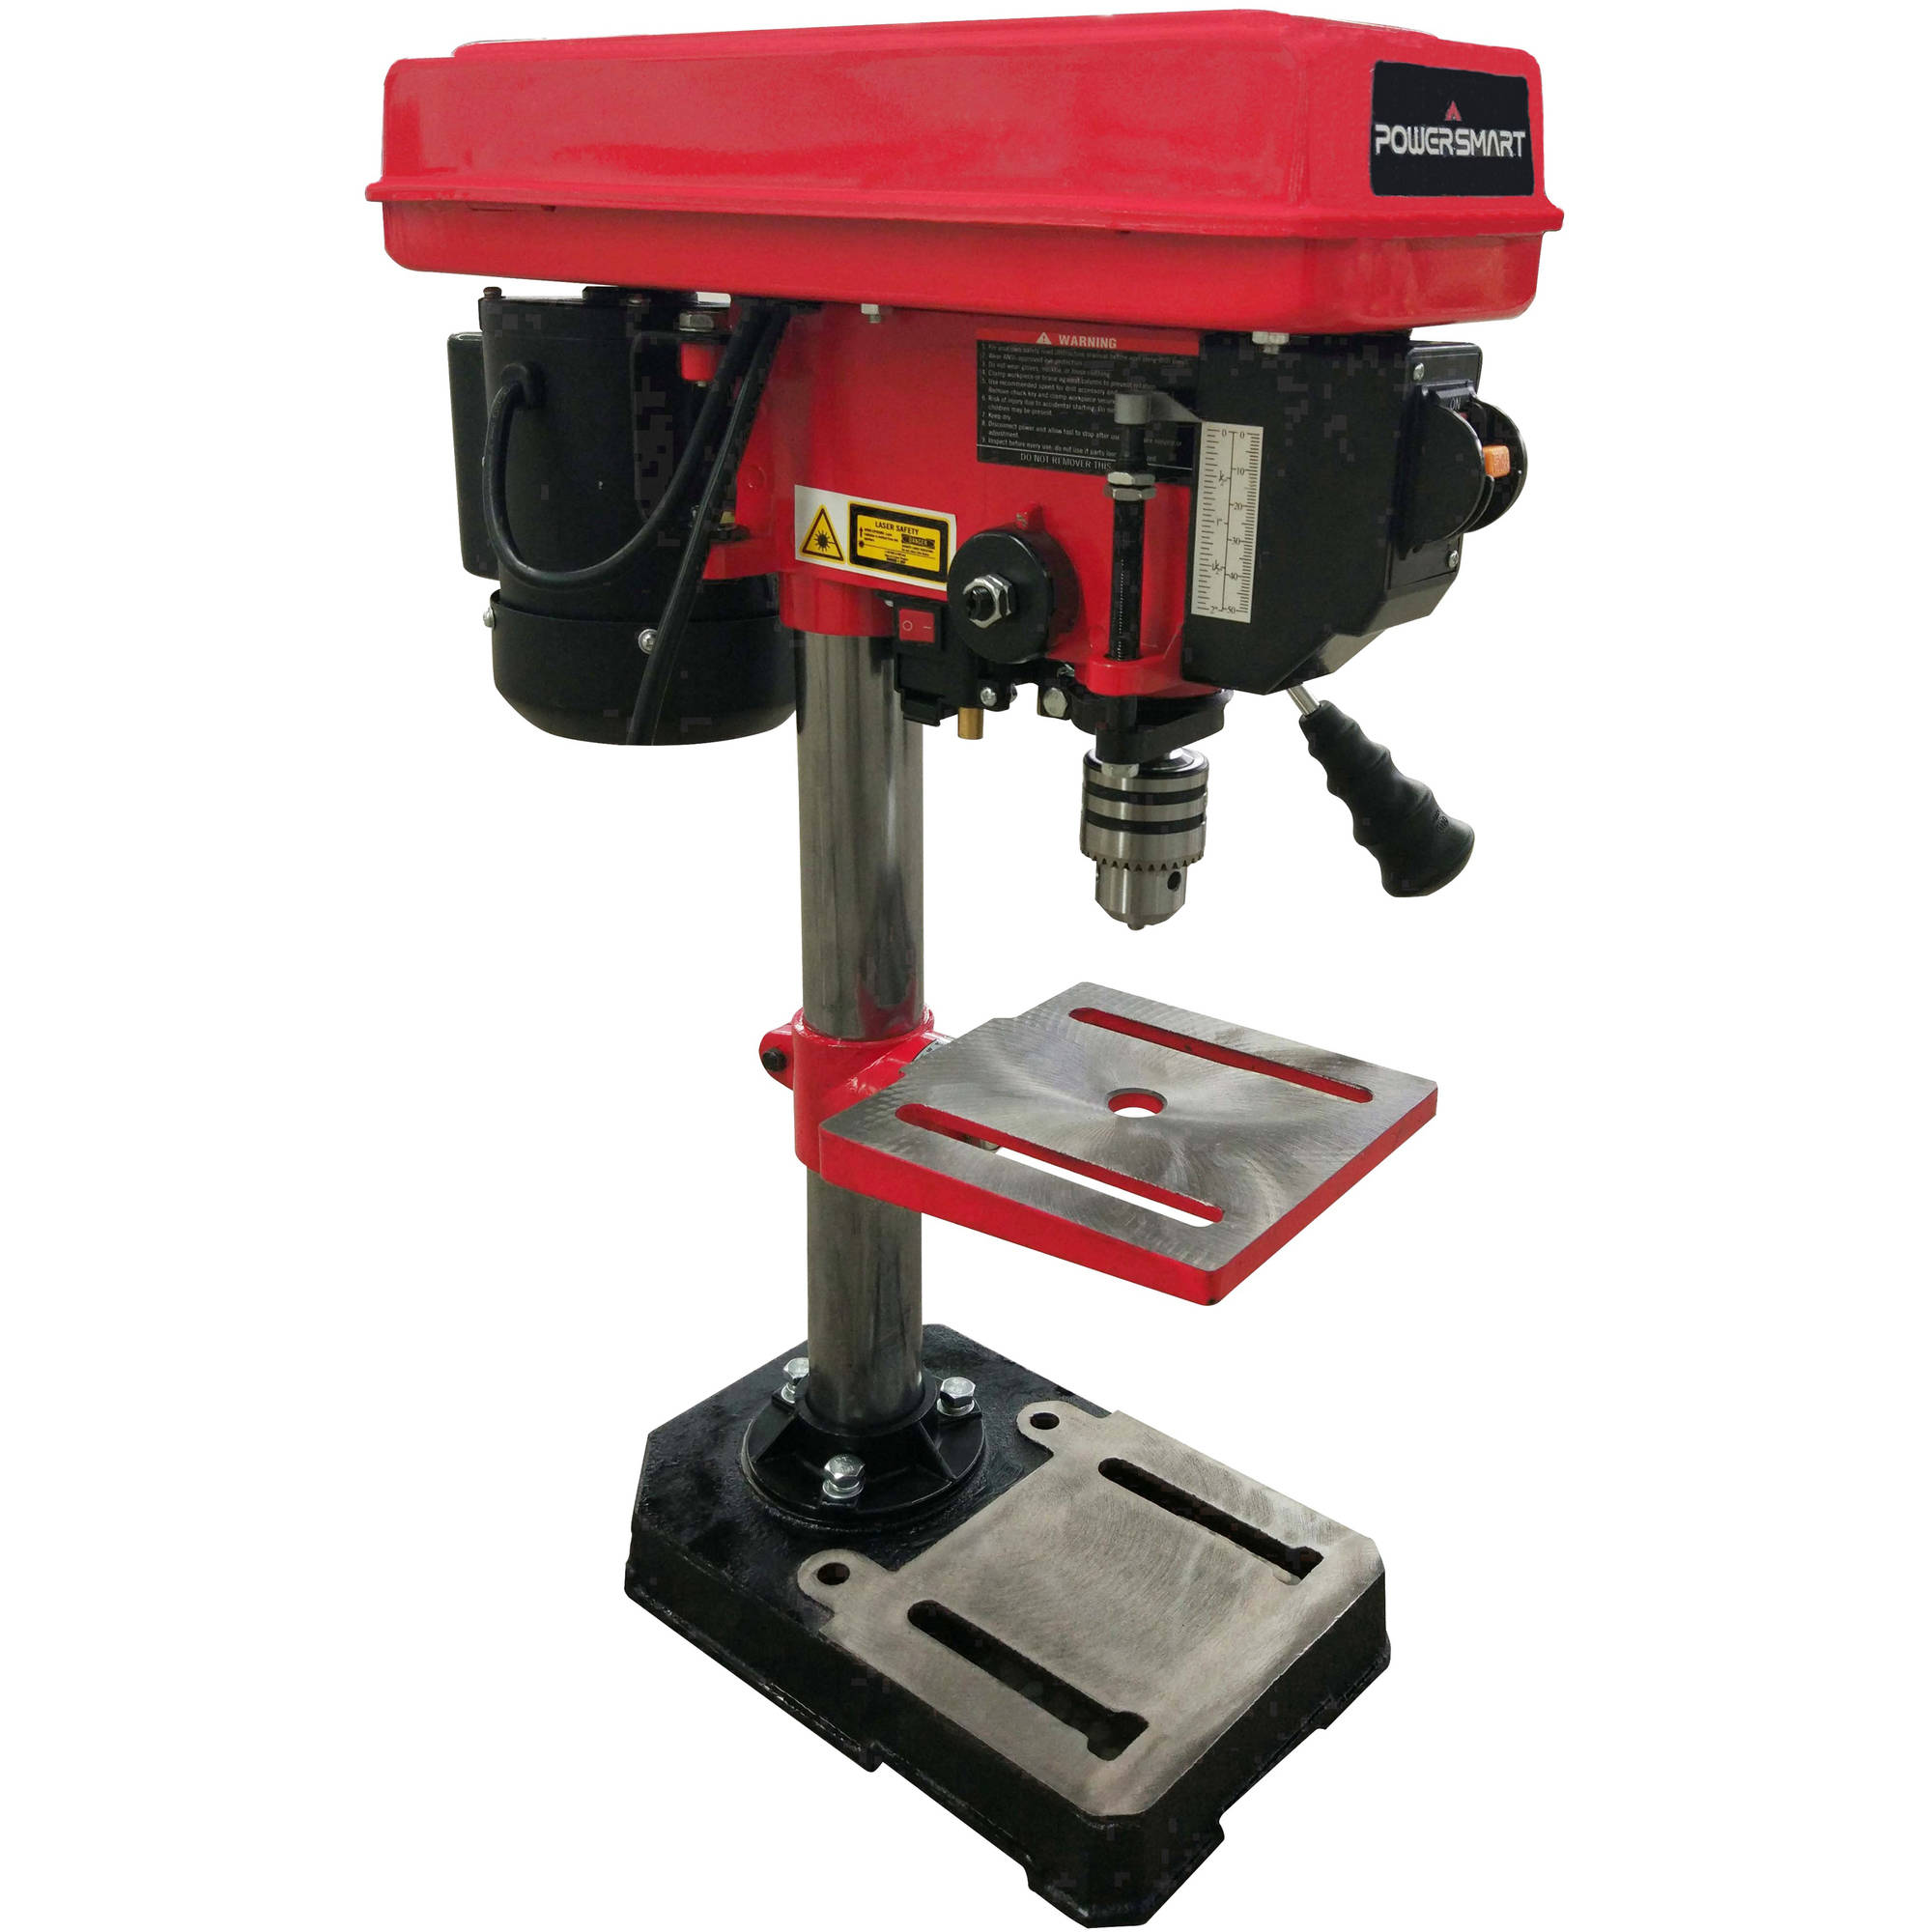 "PowerSmart PS308 8"" 5 Speed Drill Press with Laser Guide"